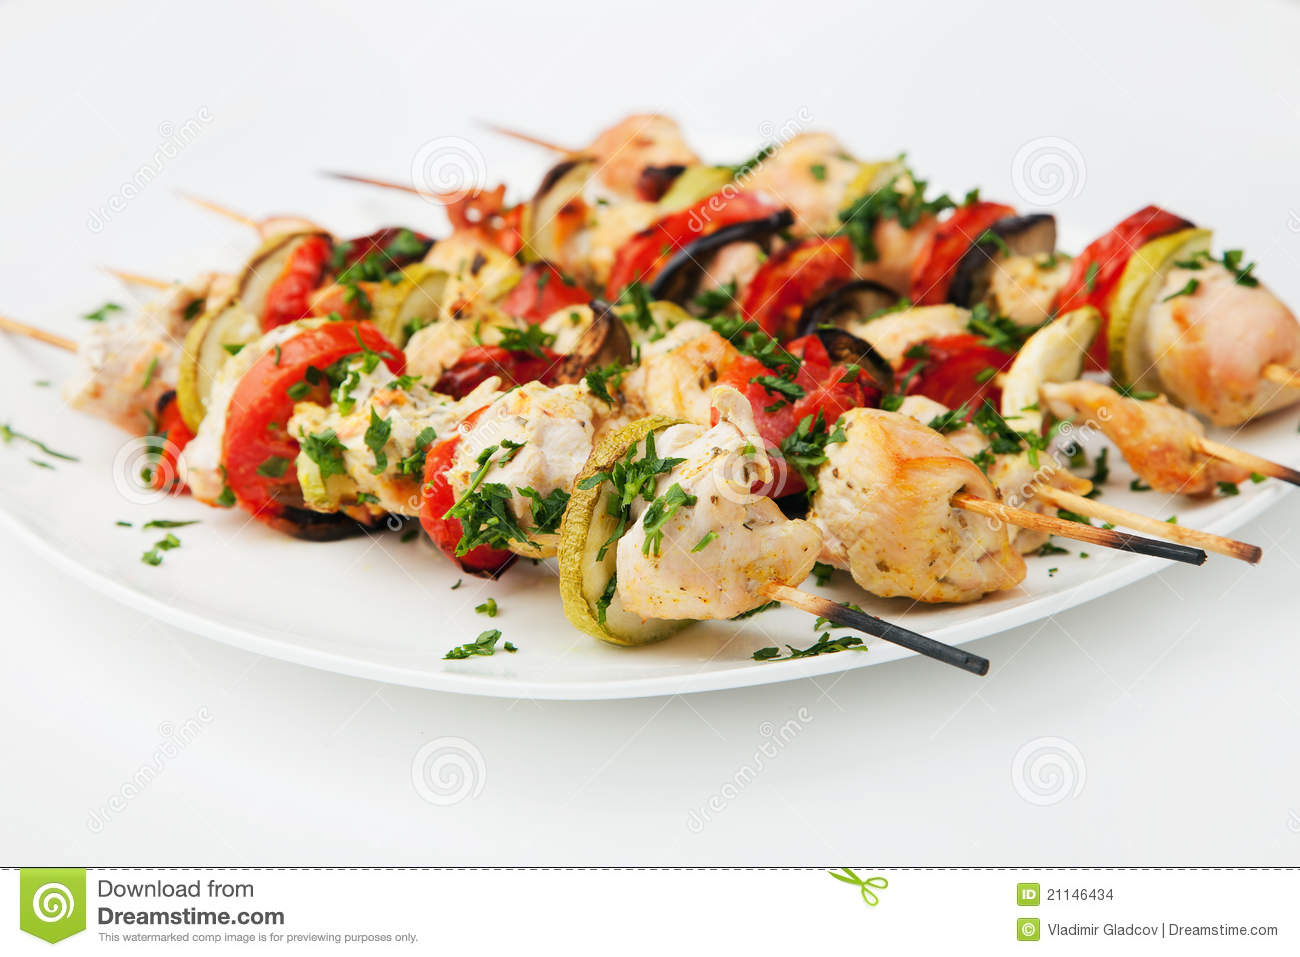 Grilled Chicken Skewers Stock Images - Image: 21146434